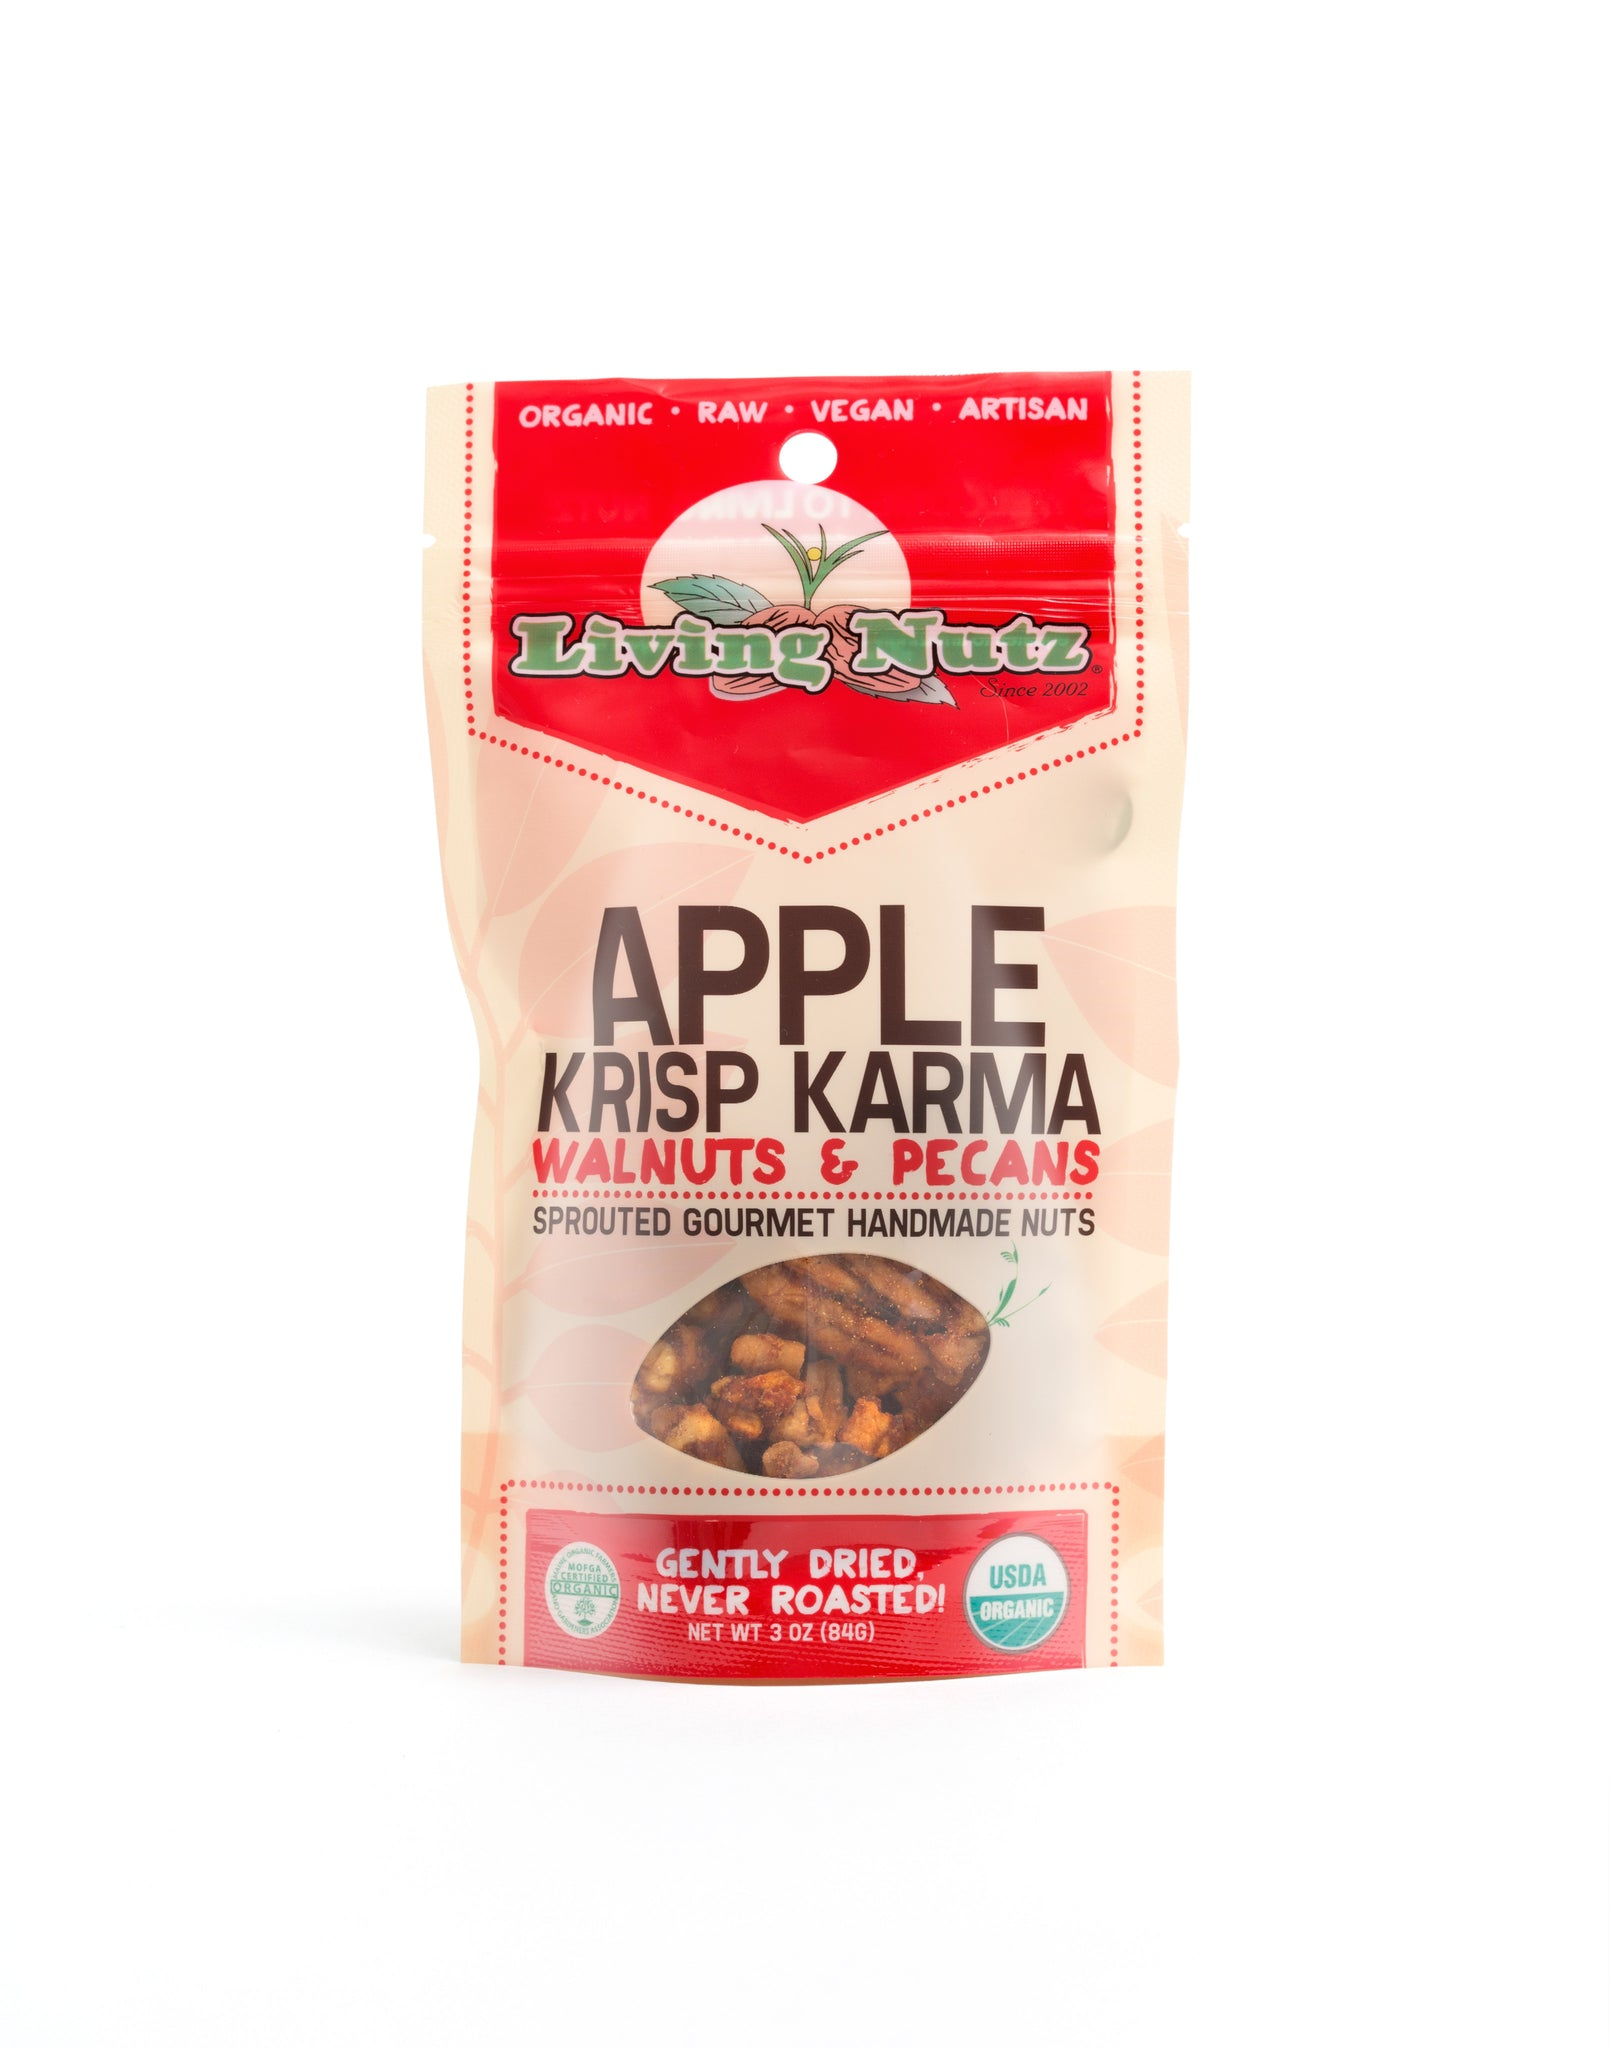 Organic raw sprouted nuts. Sprouted flavored raw walnuts with apple and spices. Organic snack